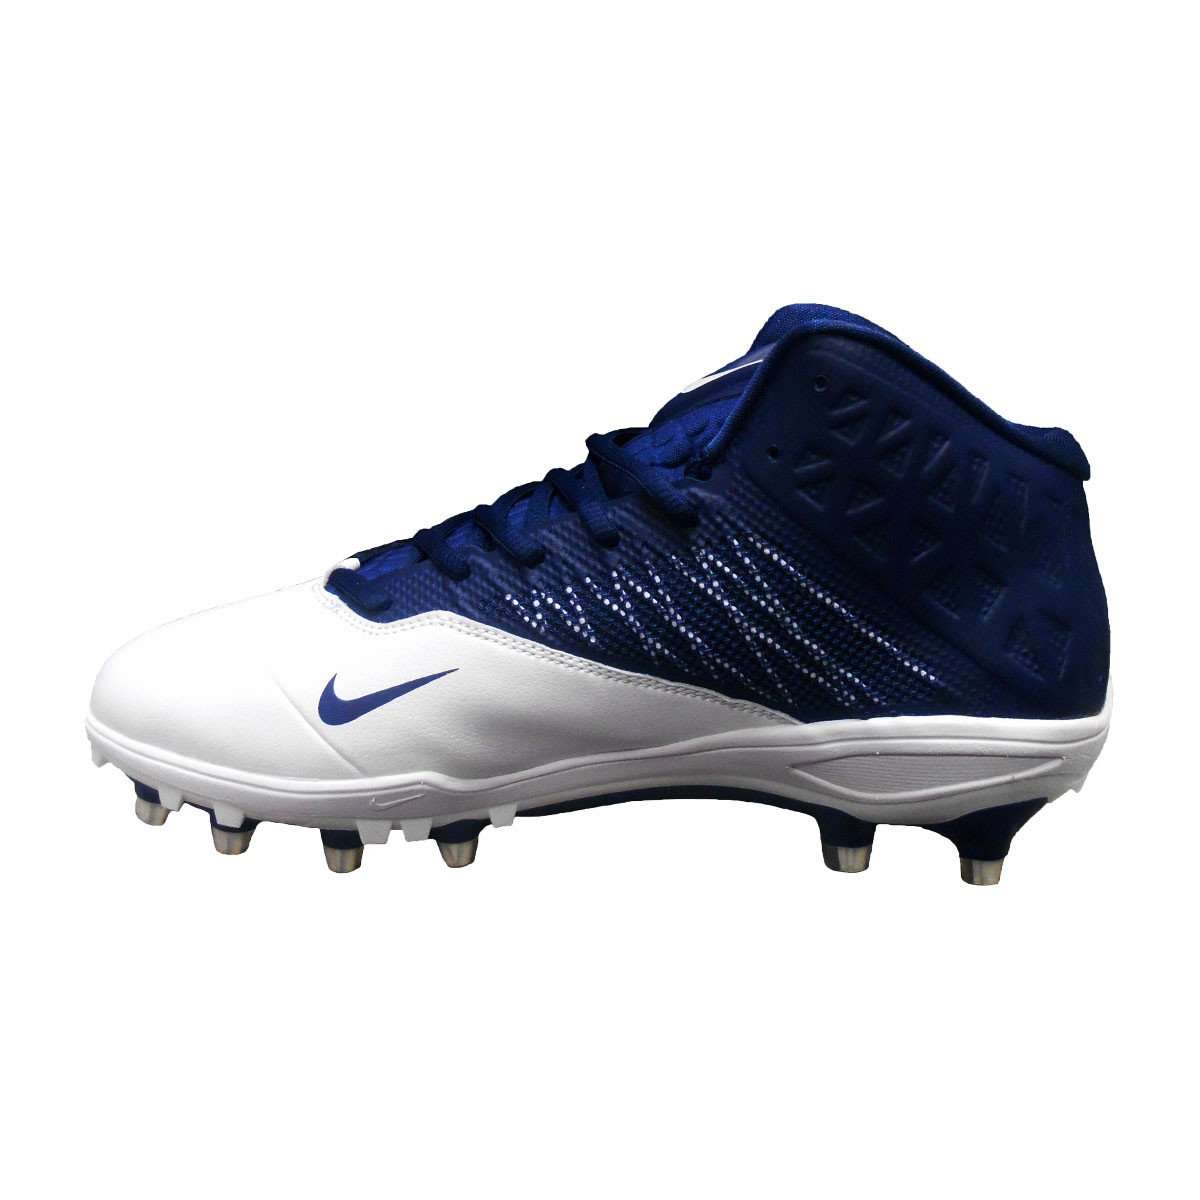 newest 155ed 5b061 ... Nike Zoom Code Elite 3 4 TD Football Cleats - League Outfitters ...